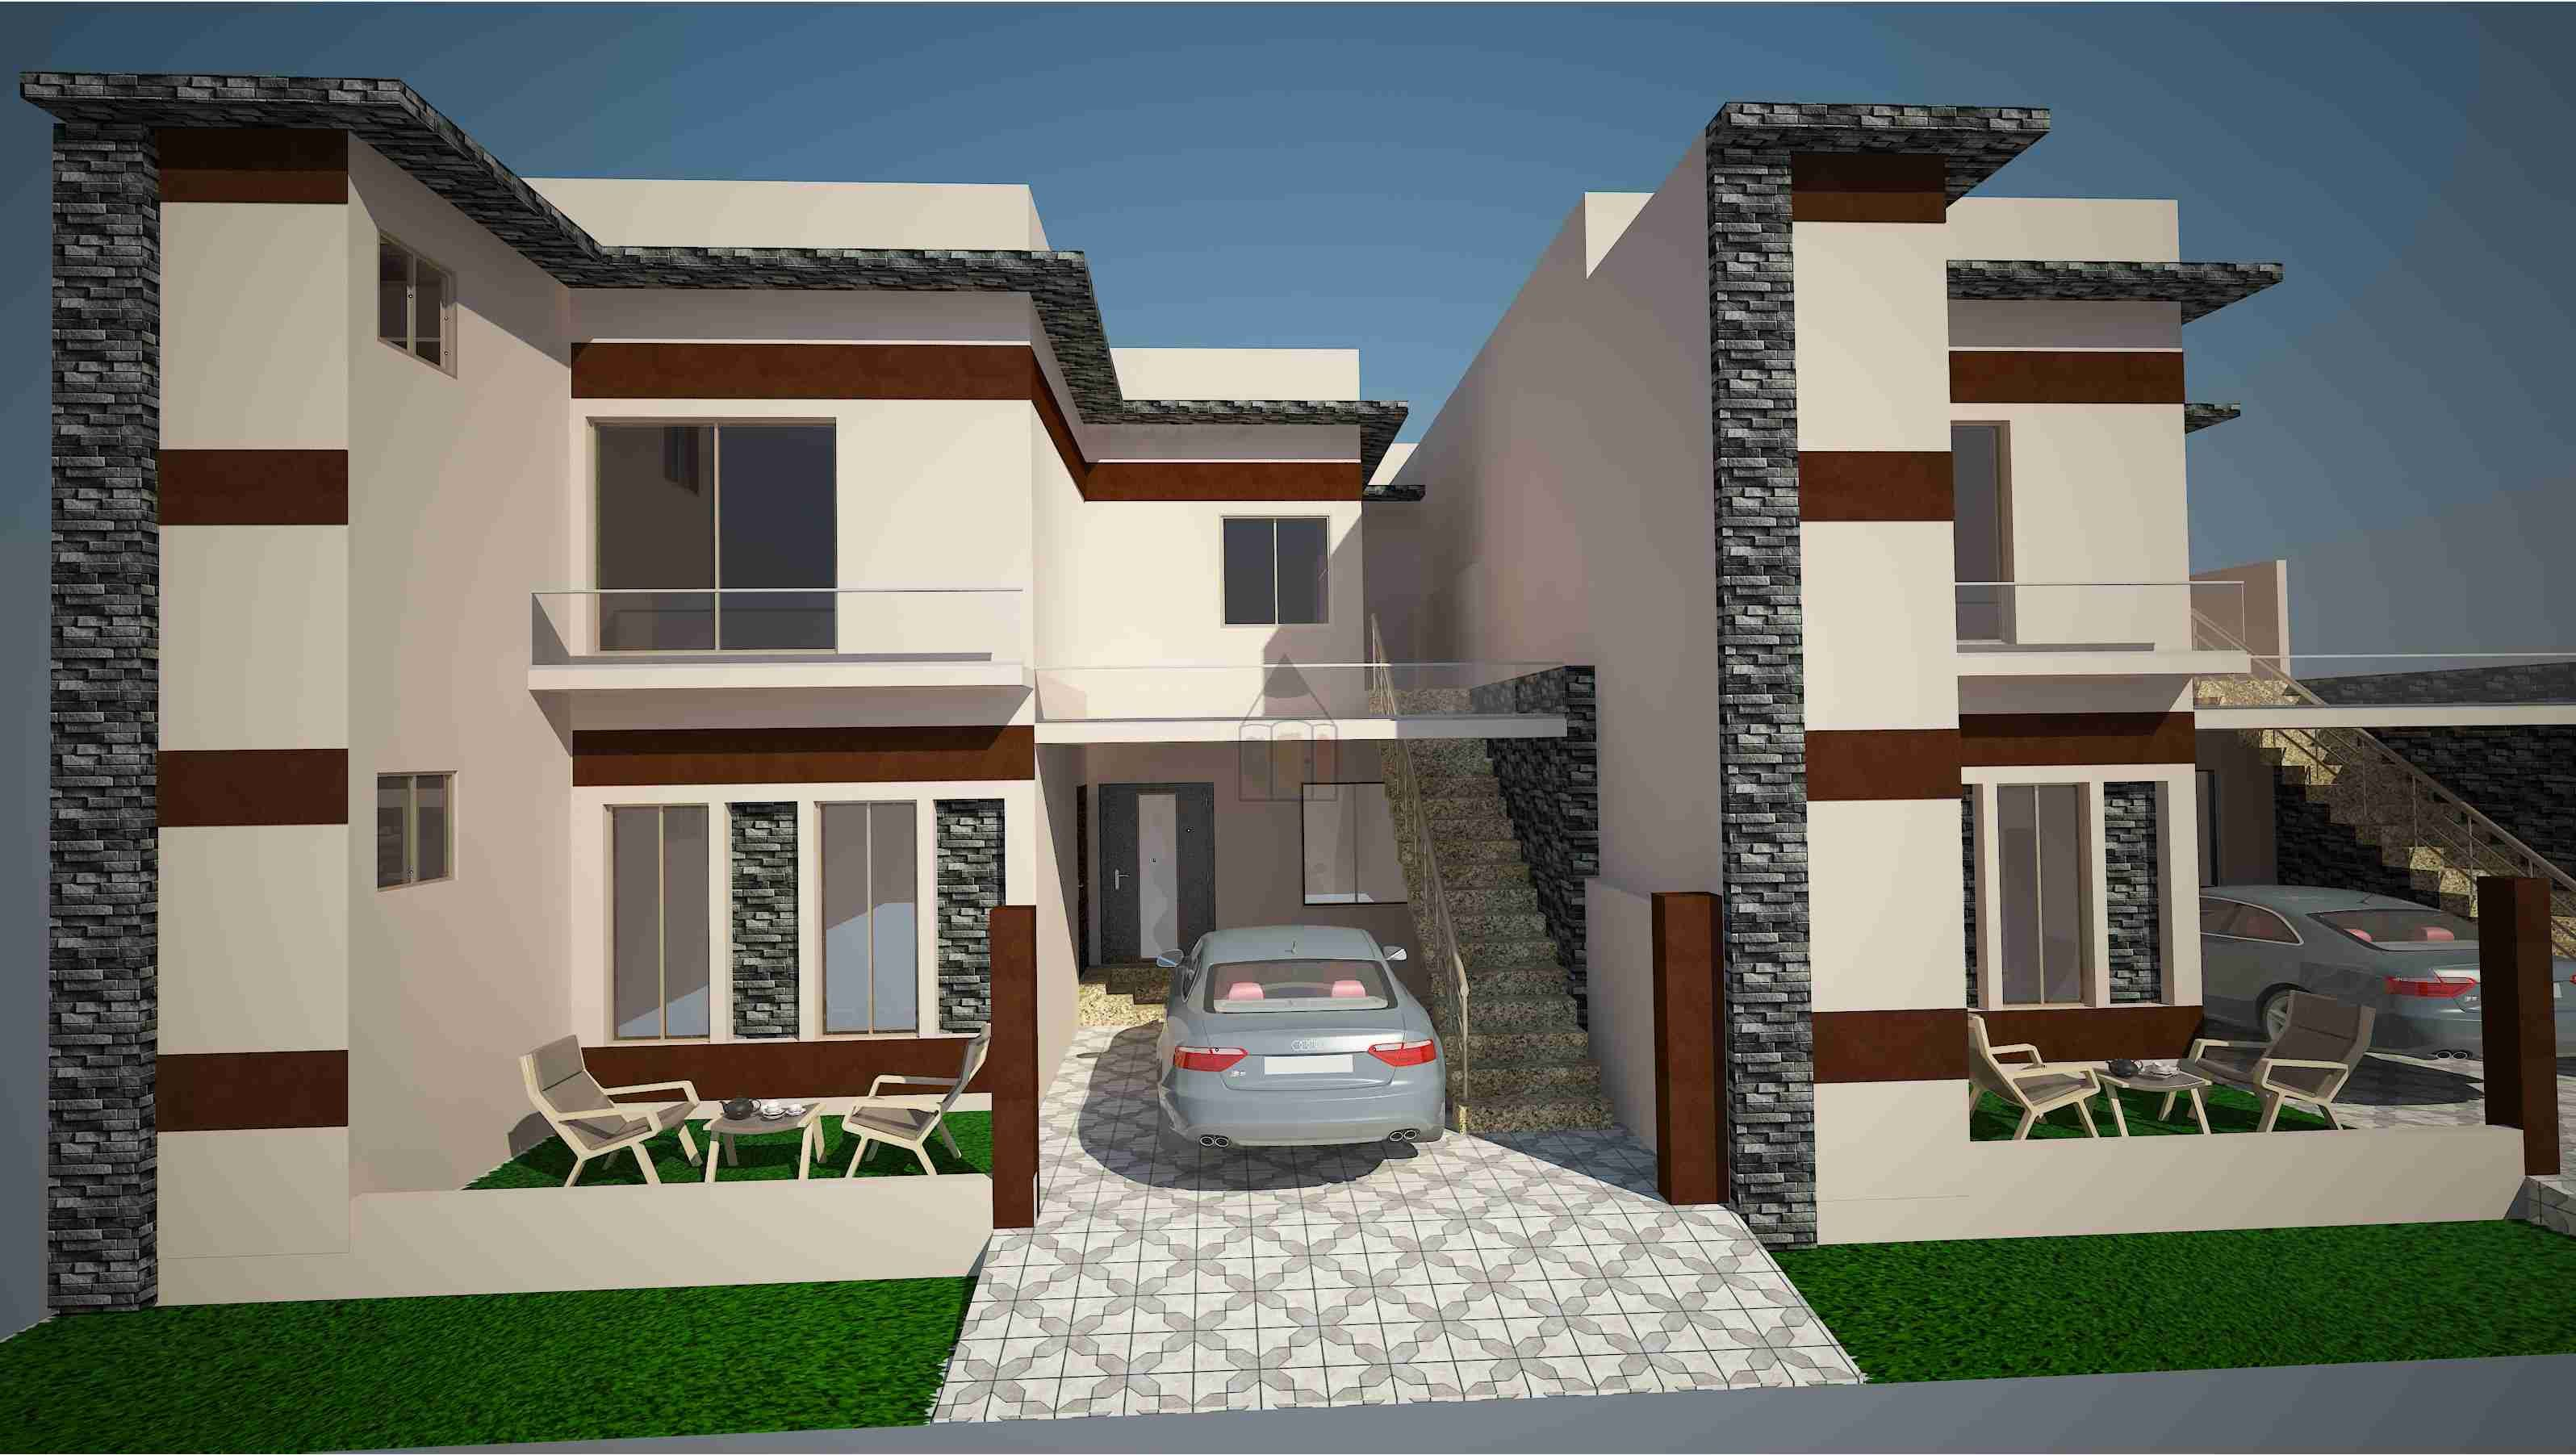 House design from front - House 7 Marla House Design Model Front Elevation